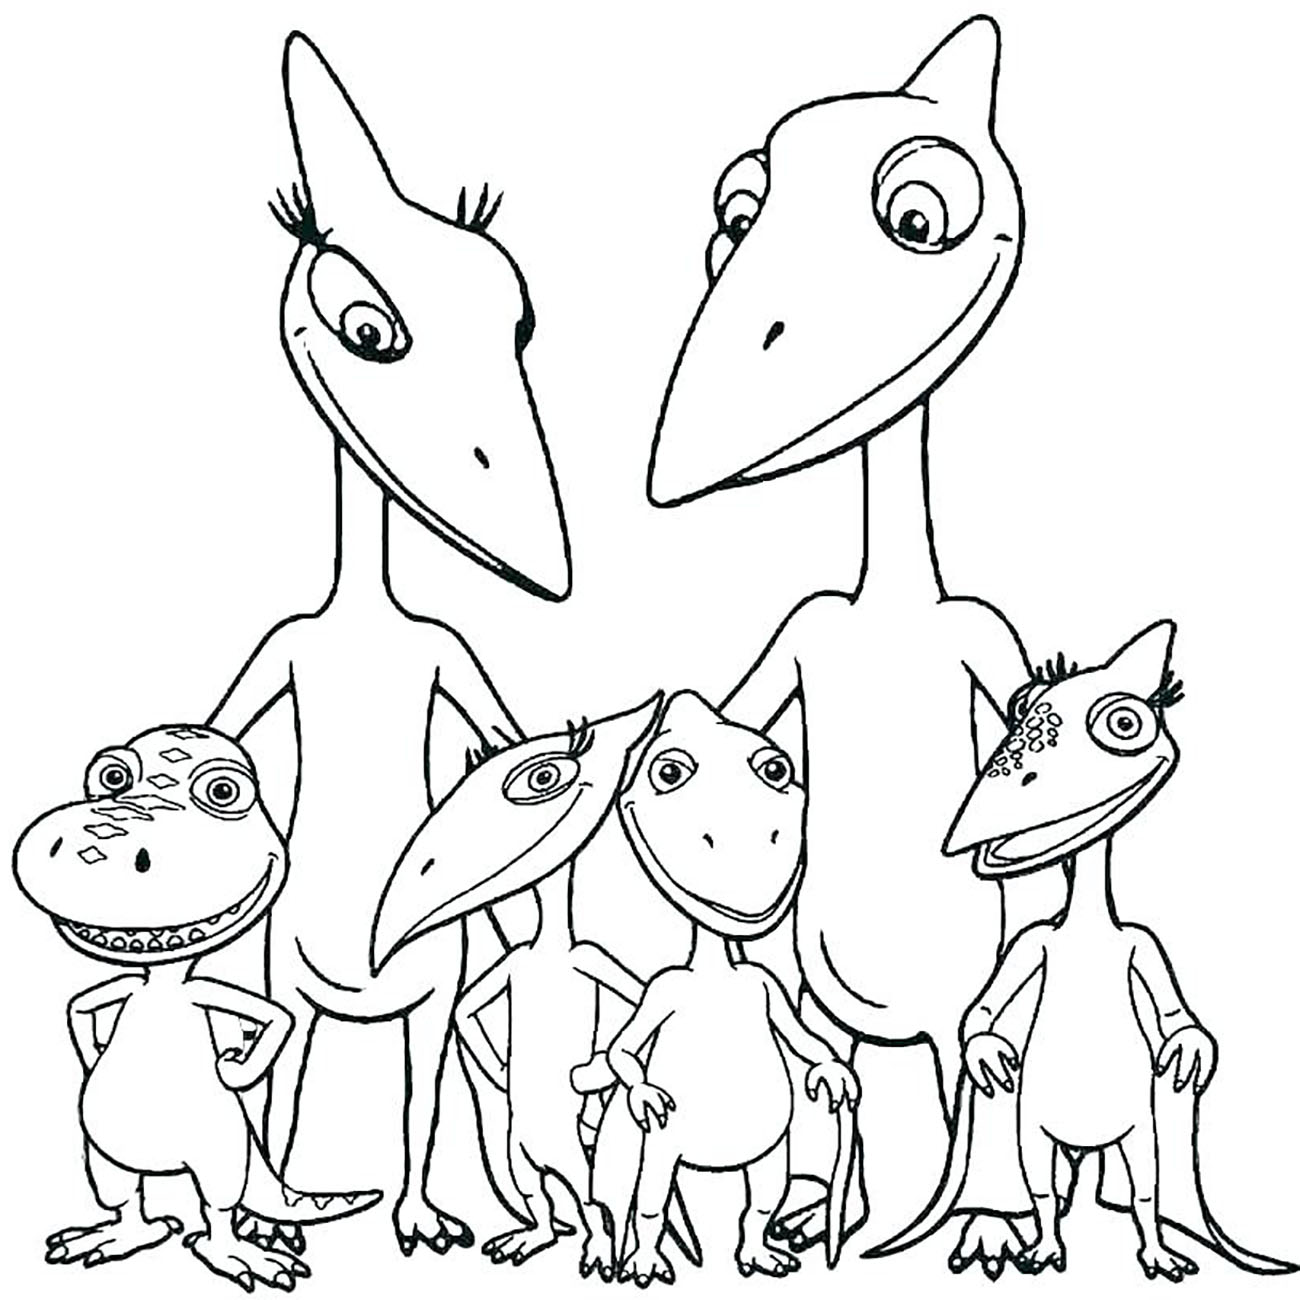 Dinosaurs coloring pages 45